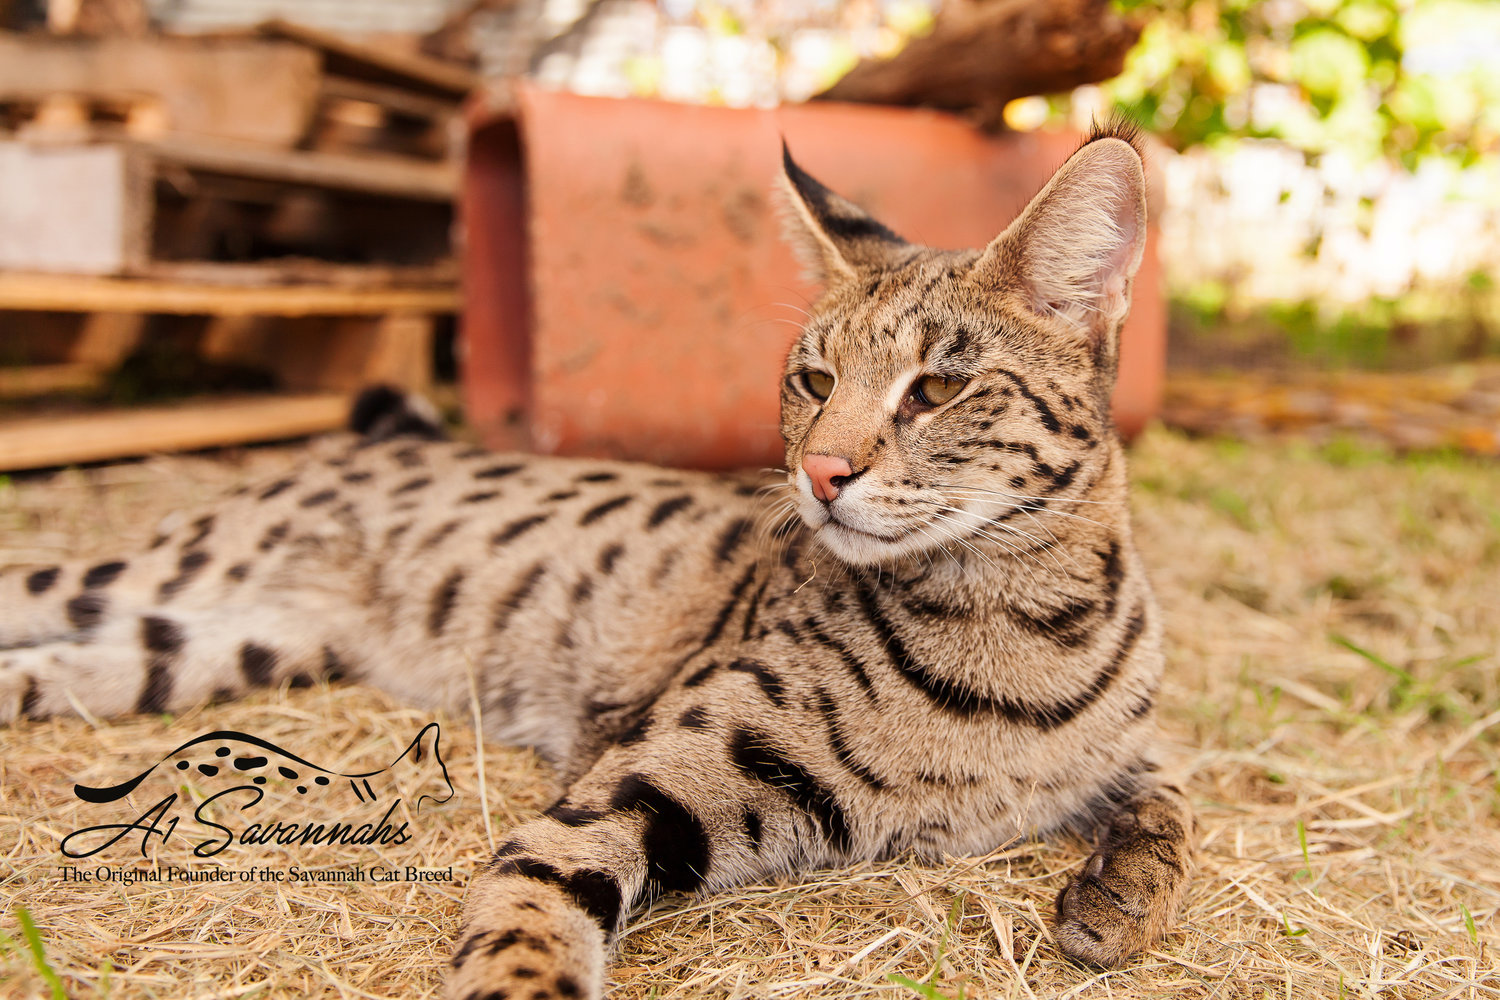 About Savannah Cats A1 Savannahs